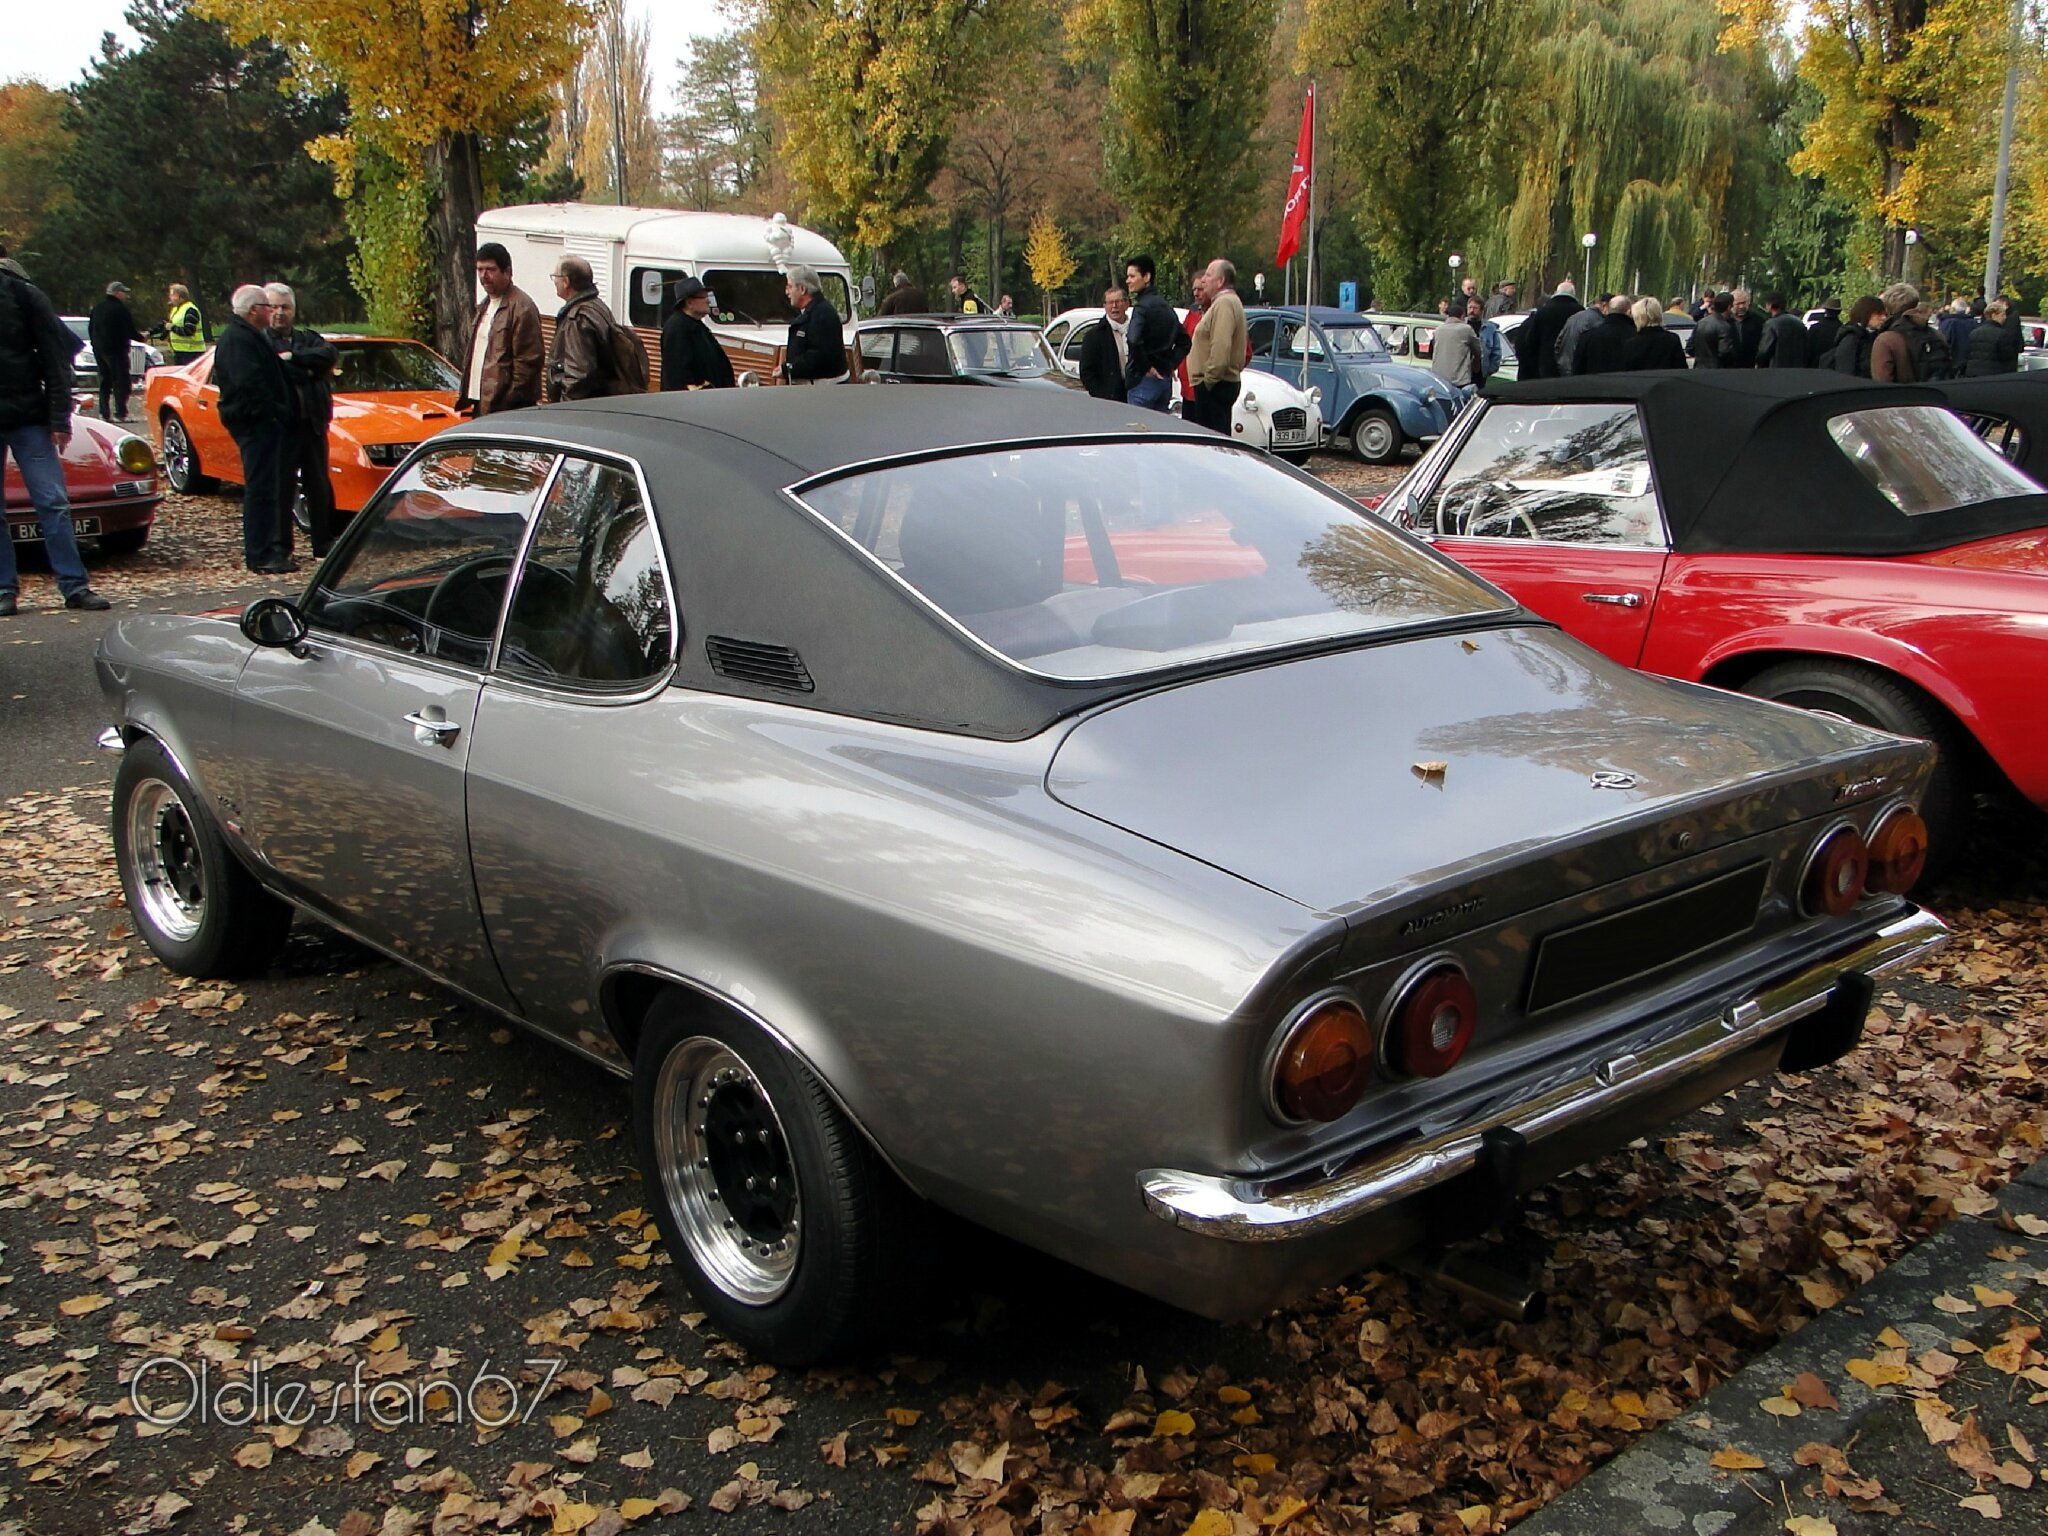 opel manta a 1900 berlinetta automatic oldiesfan67 mon blog auto. Black Bedroom Furniture Sets. Home Design Ideas